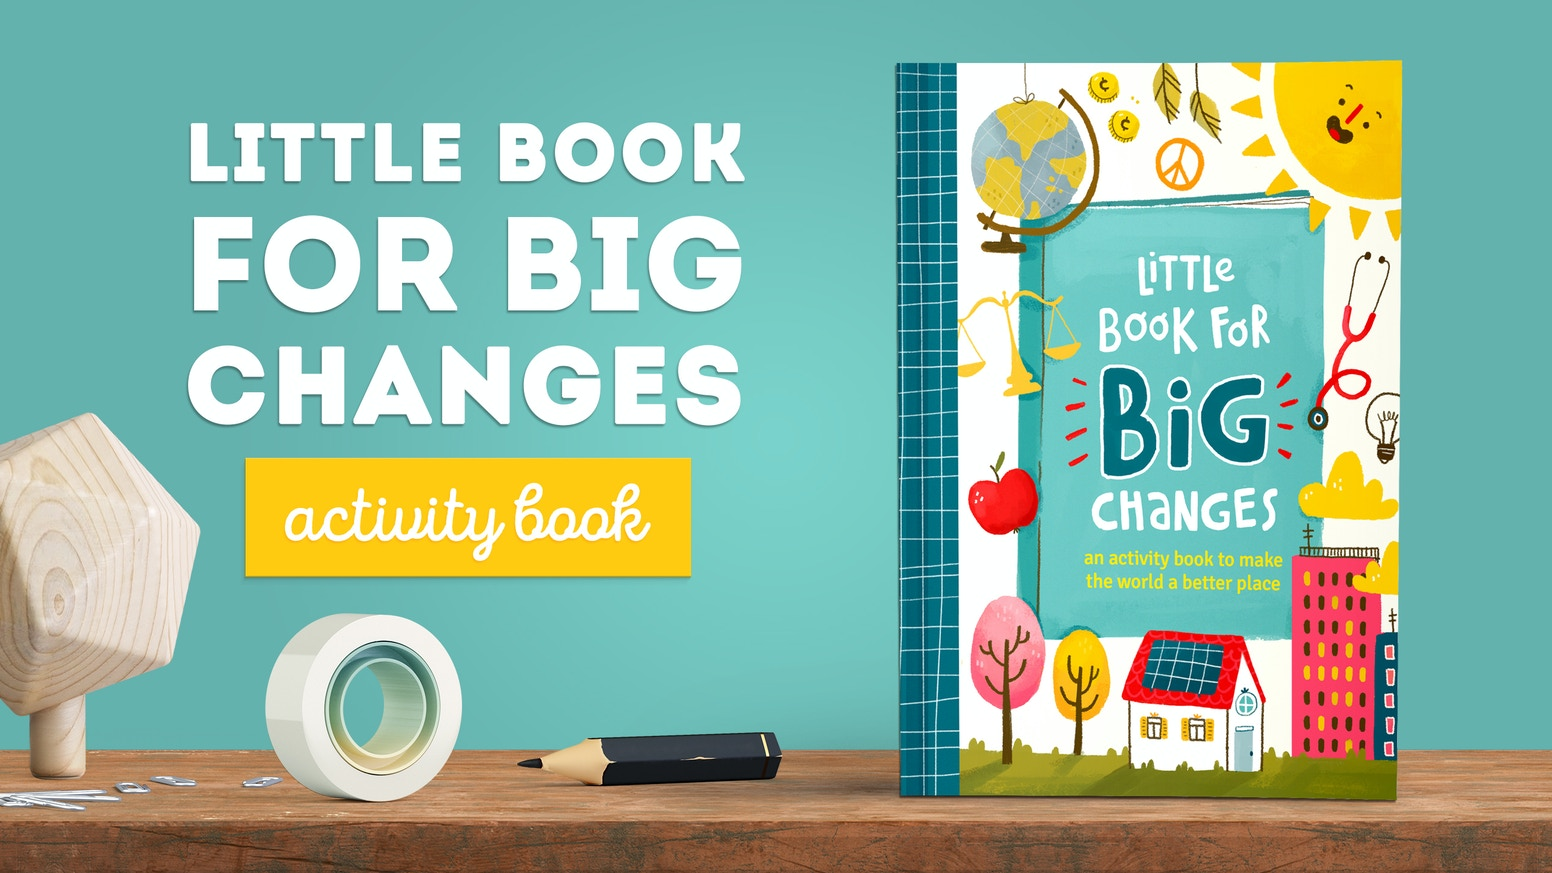 Little Book For Big Changes Kid S Activity Book By Little Big